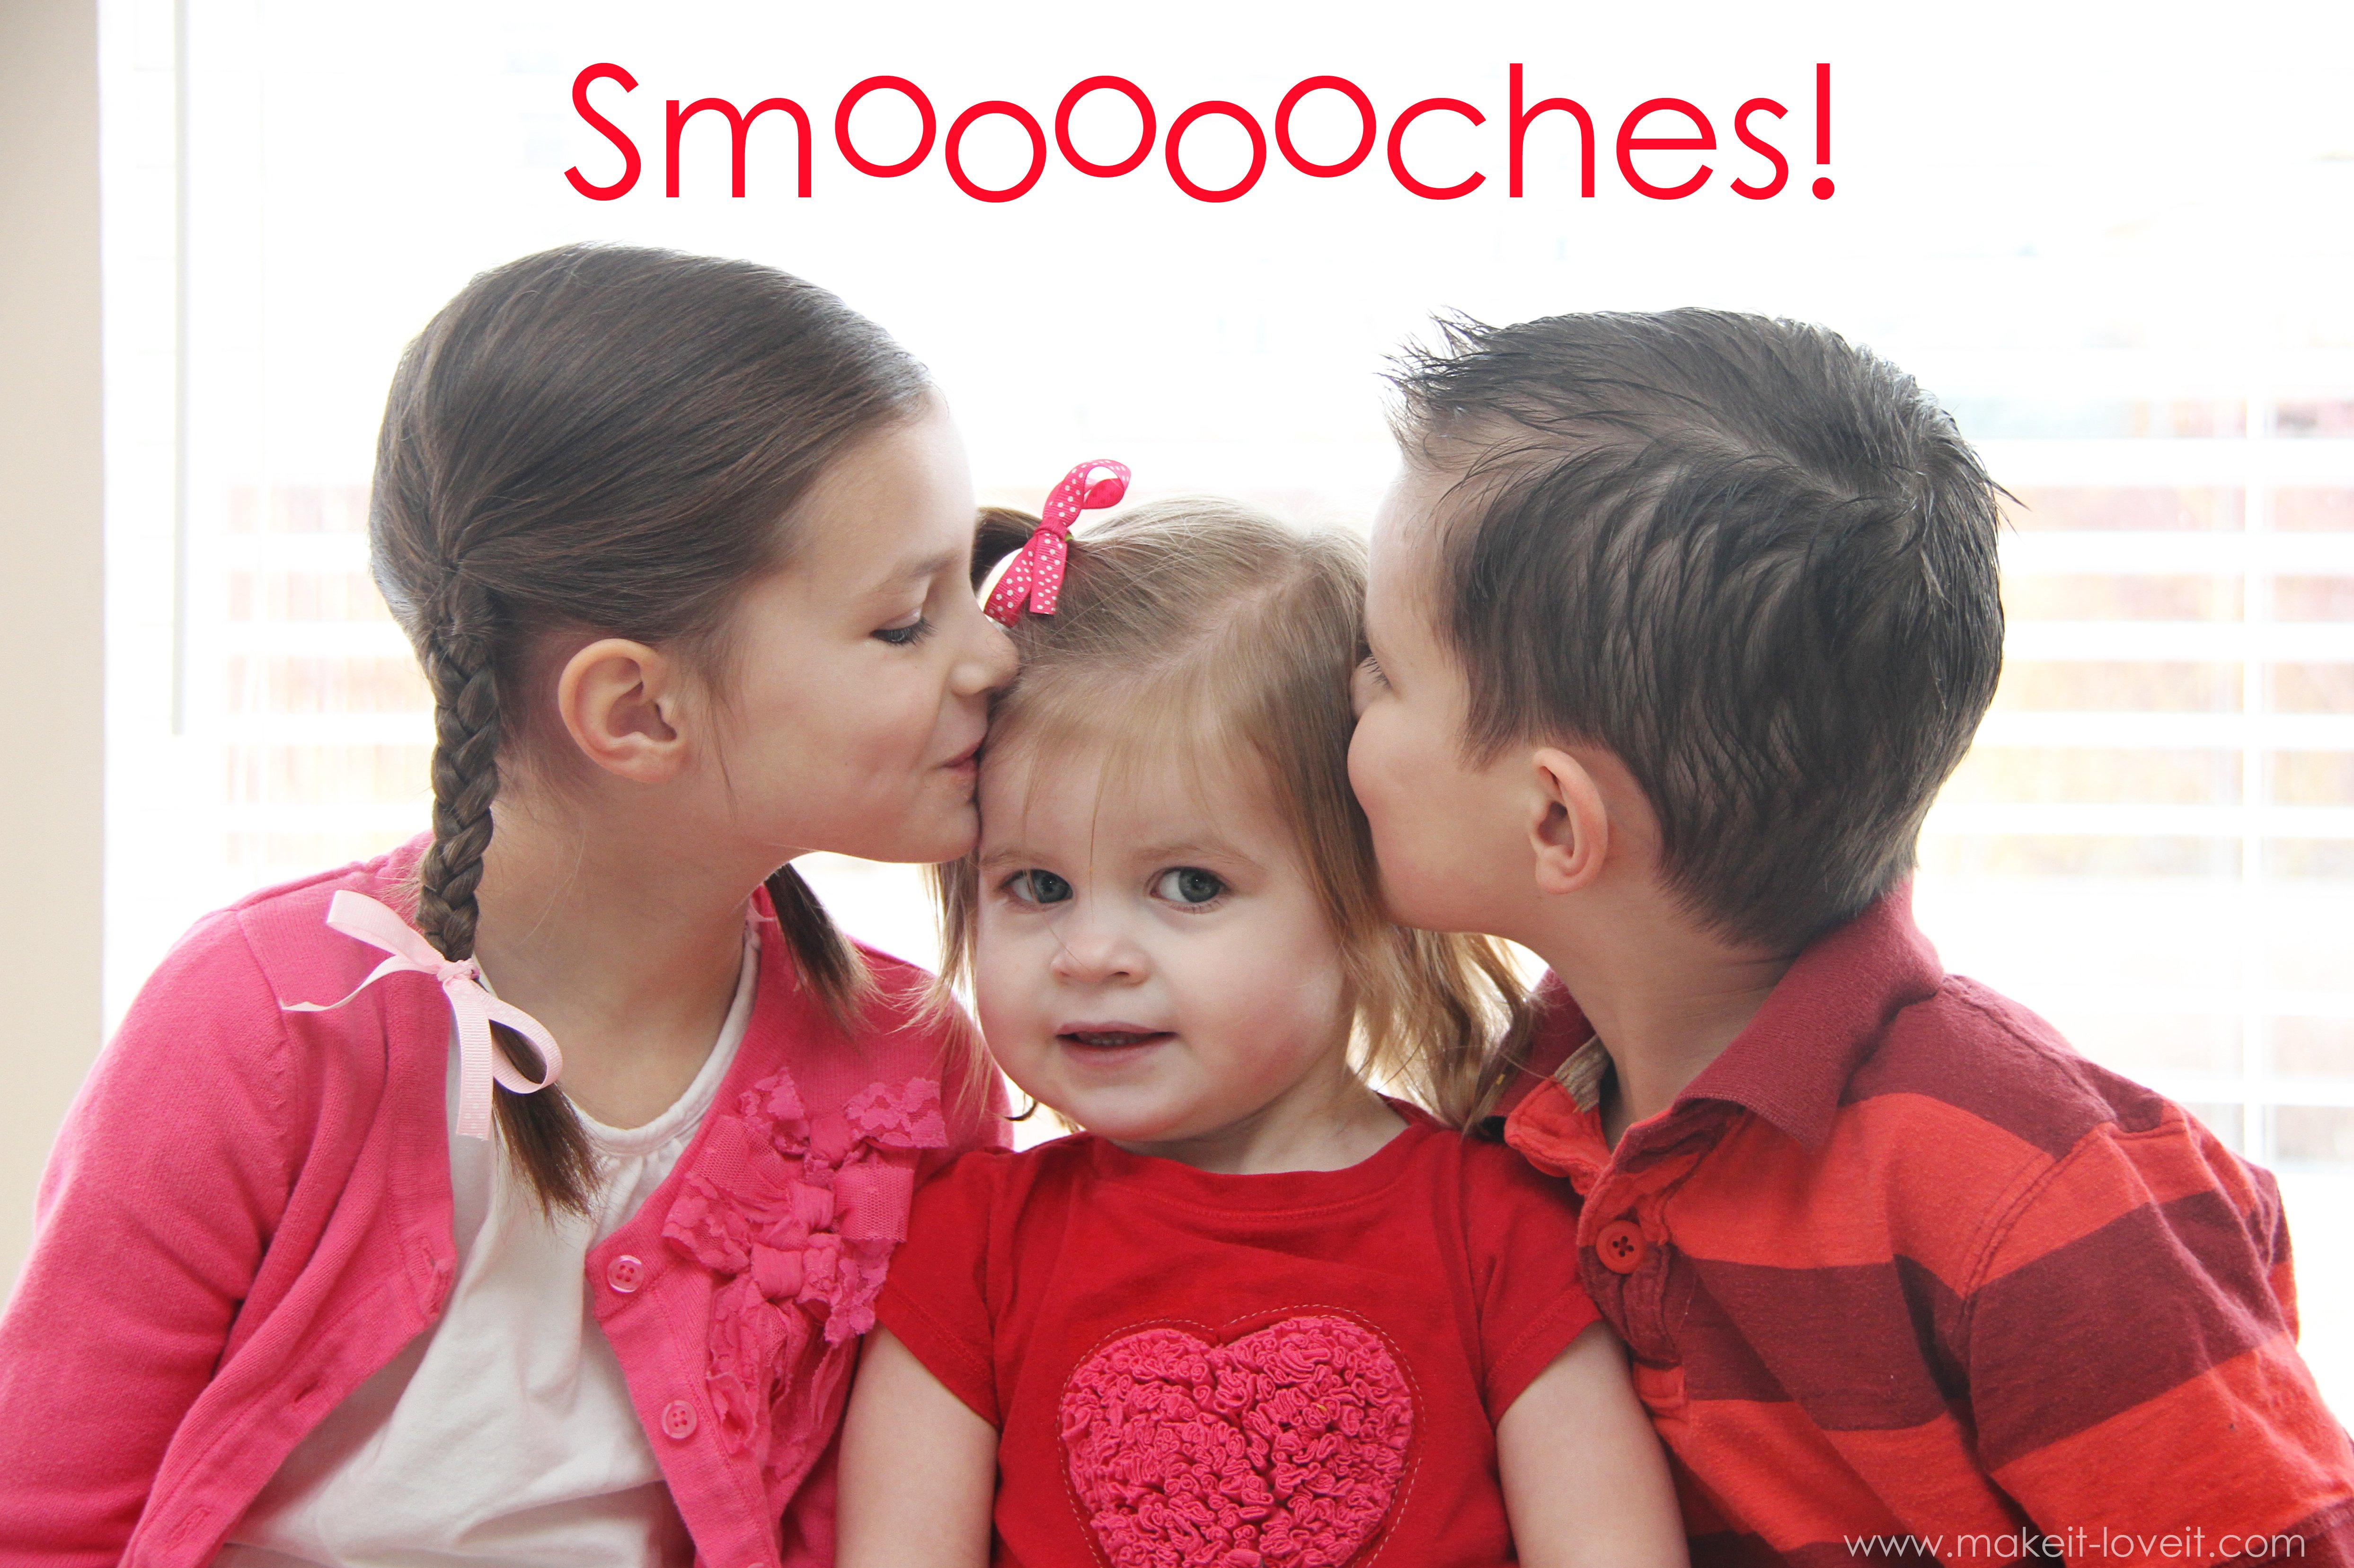 Happy Valentine's Day…..Smooooooch!! :)